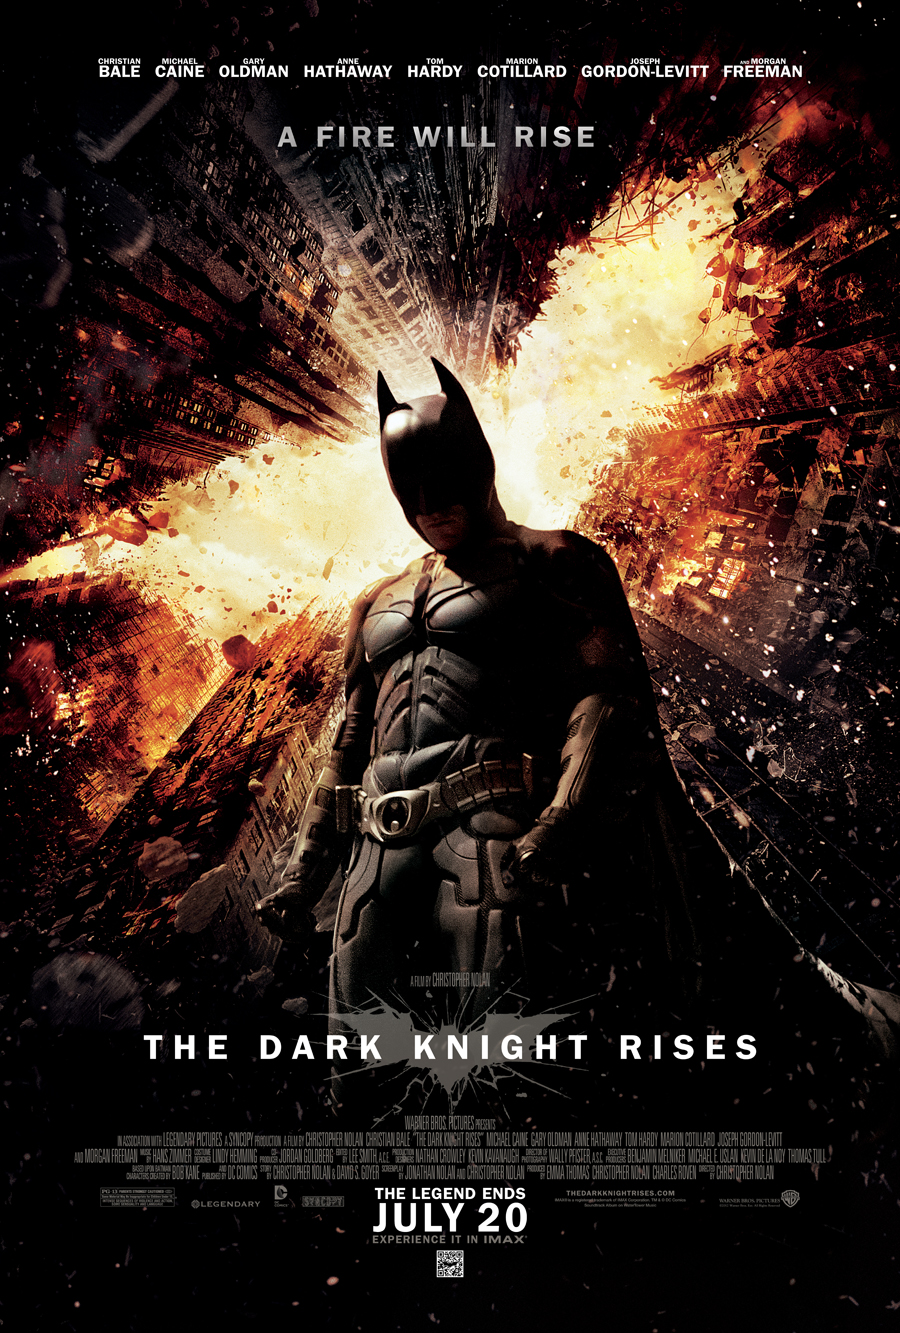 The Dark Knight Rises at Moody Gardens!